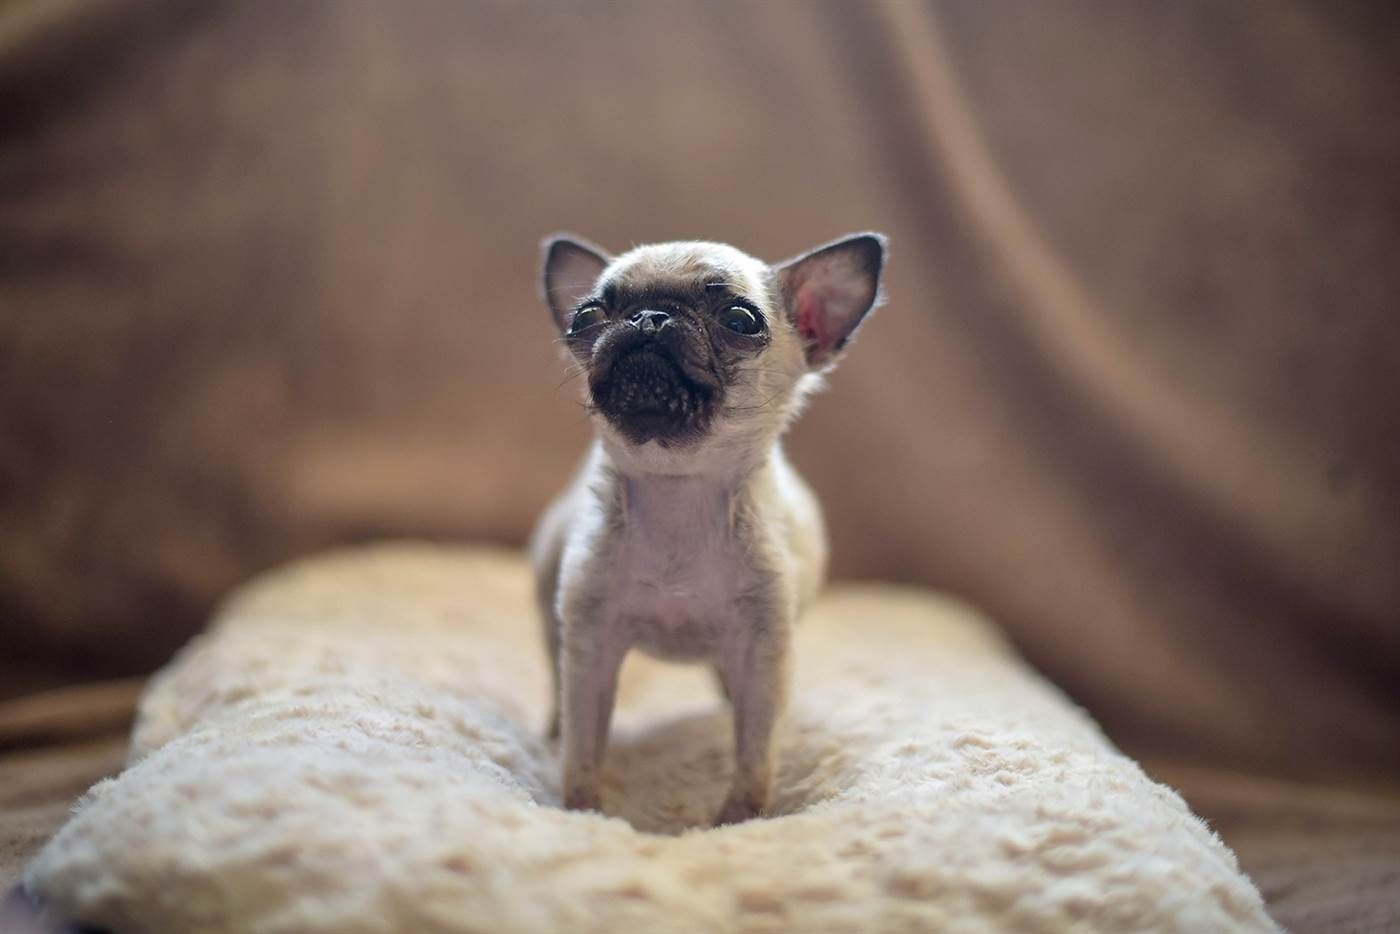 World S Smallest Pug Check Out How Tiny She Is Small Pug Tiny Dogs Pugs